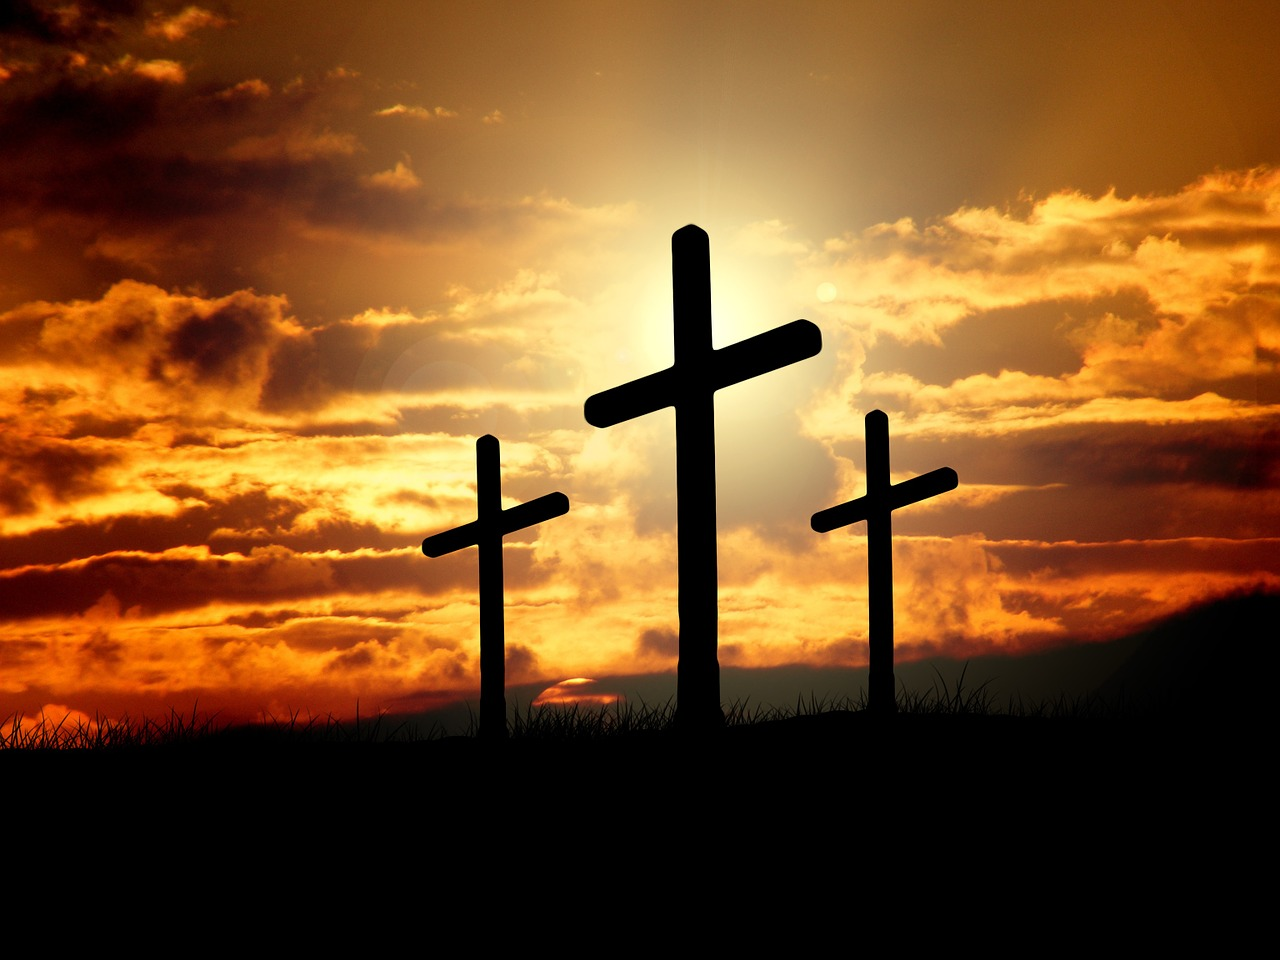 god made the cross for jesus and us